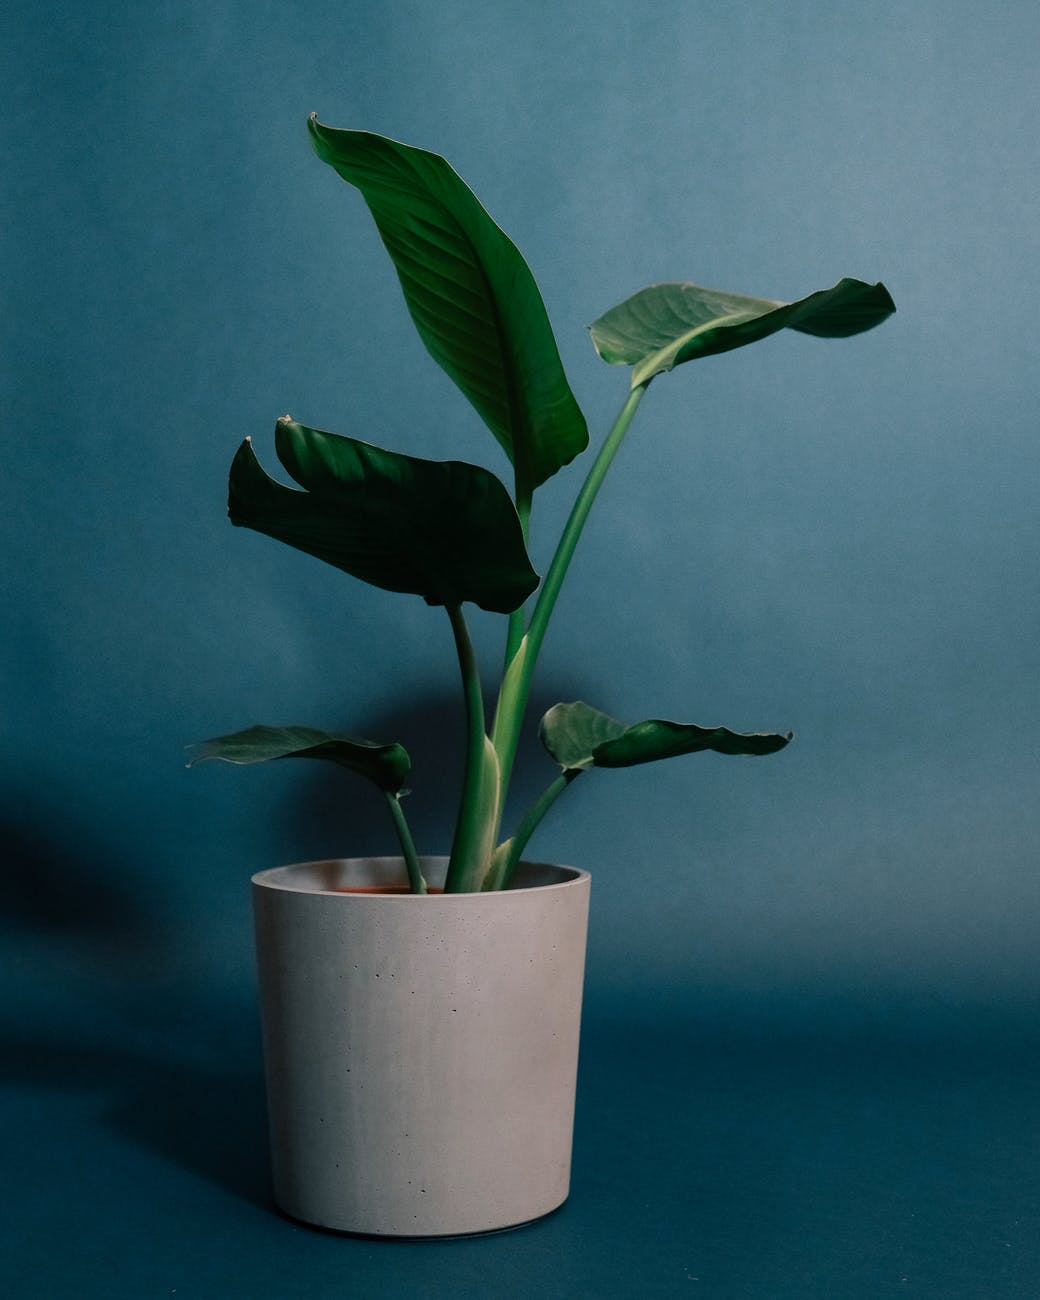 potted plant with green leaves on blue surface